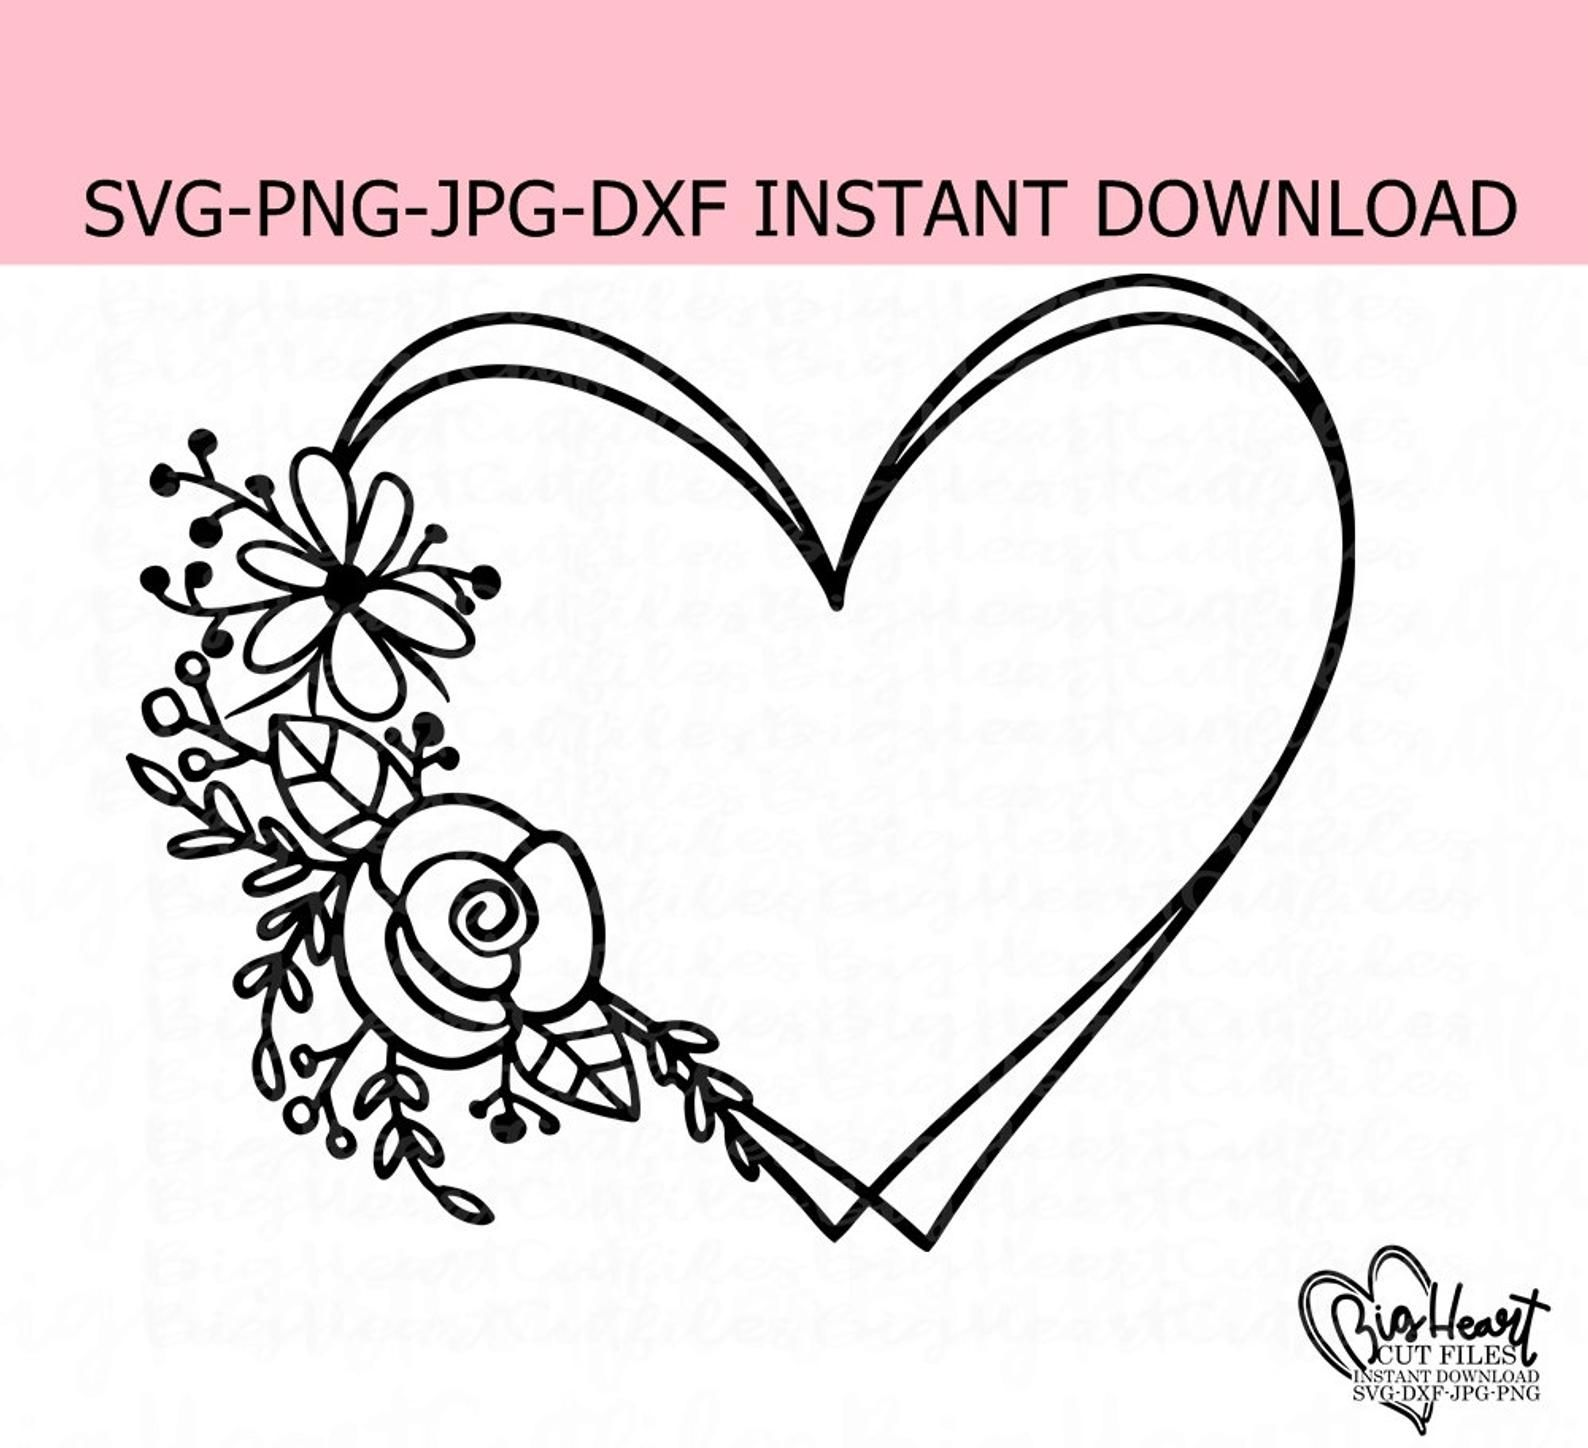 Floral Heart Wreath Svg Png Jpg Dxf Heart Wreath Svg Flower Wreath Monogram Frame Floral Double Monogram Frame Svg Silhouette Cricut Monogram Frame Wreath Drawing Embroidery Patterns